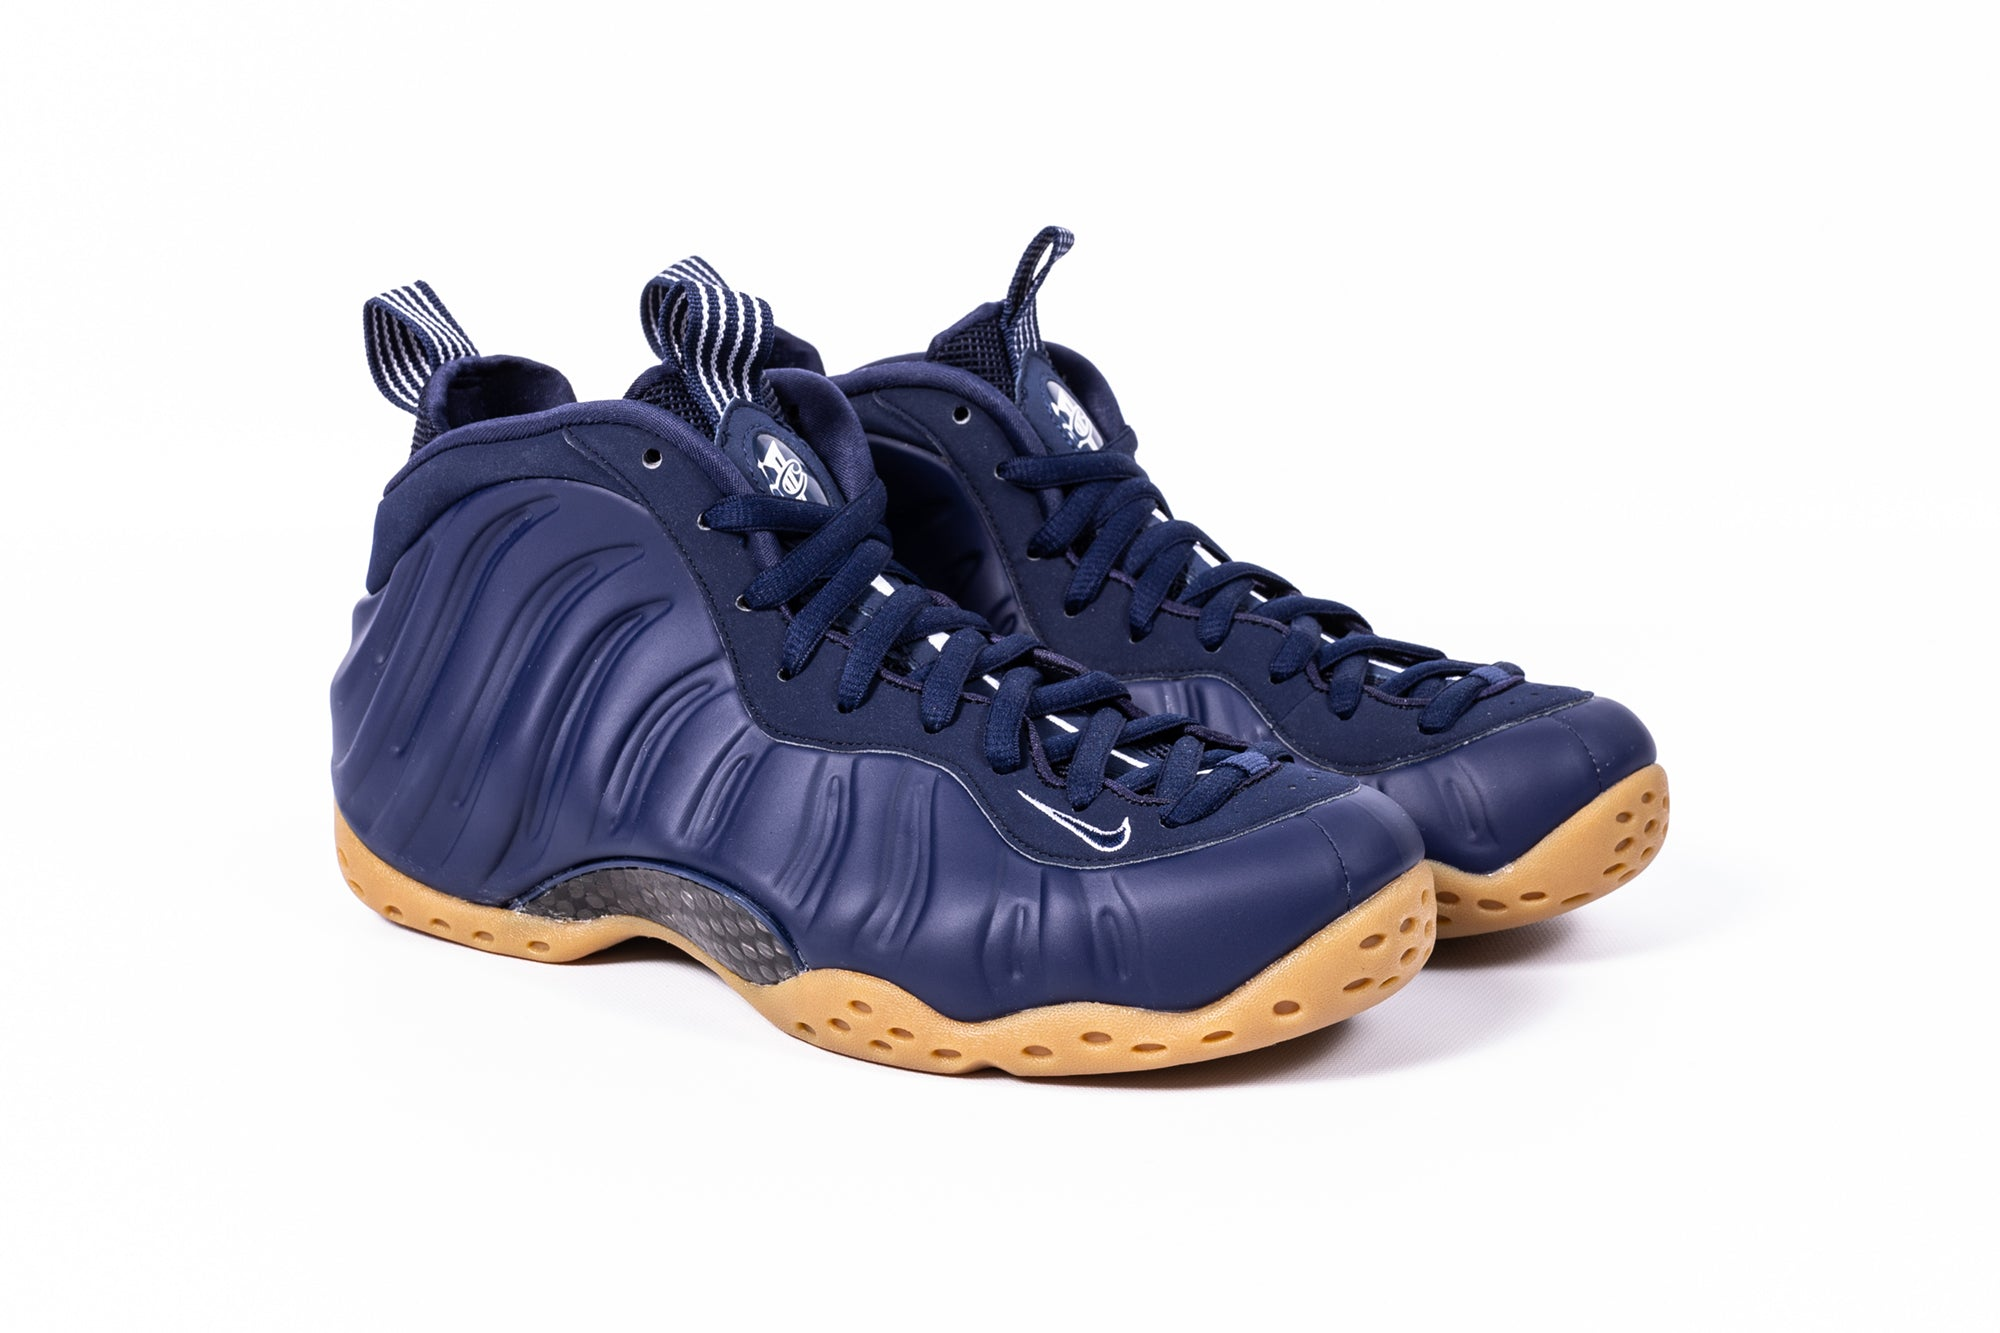 quality design 625fd 67254 NIKE AIR FOAMPOSITE ONE